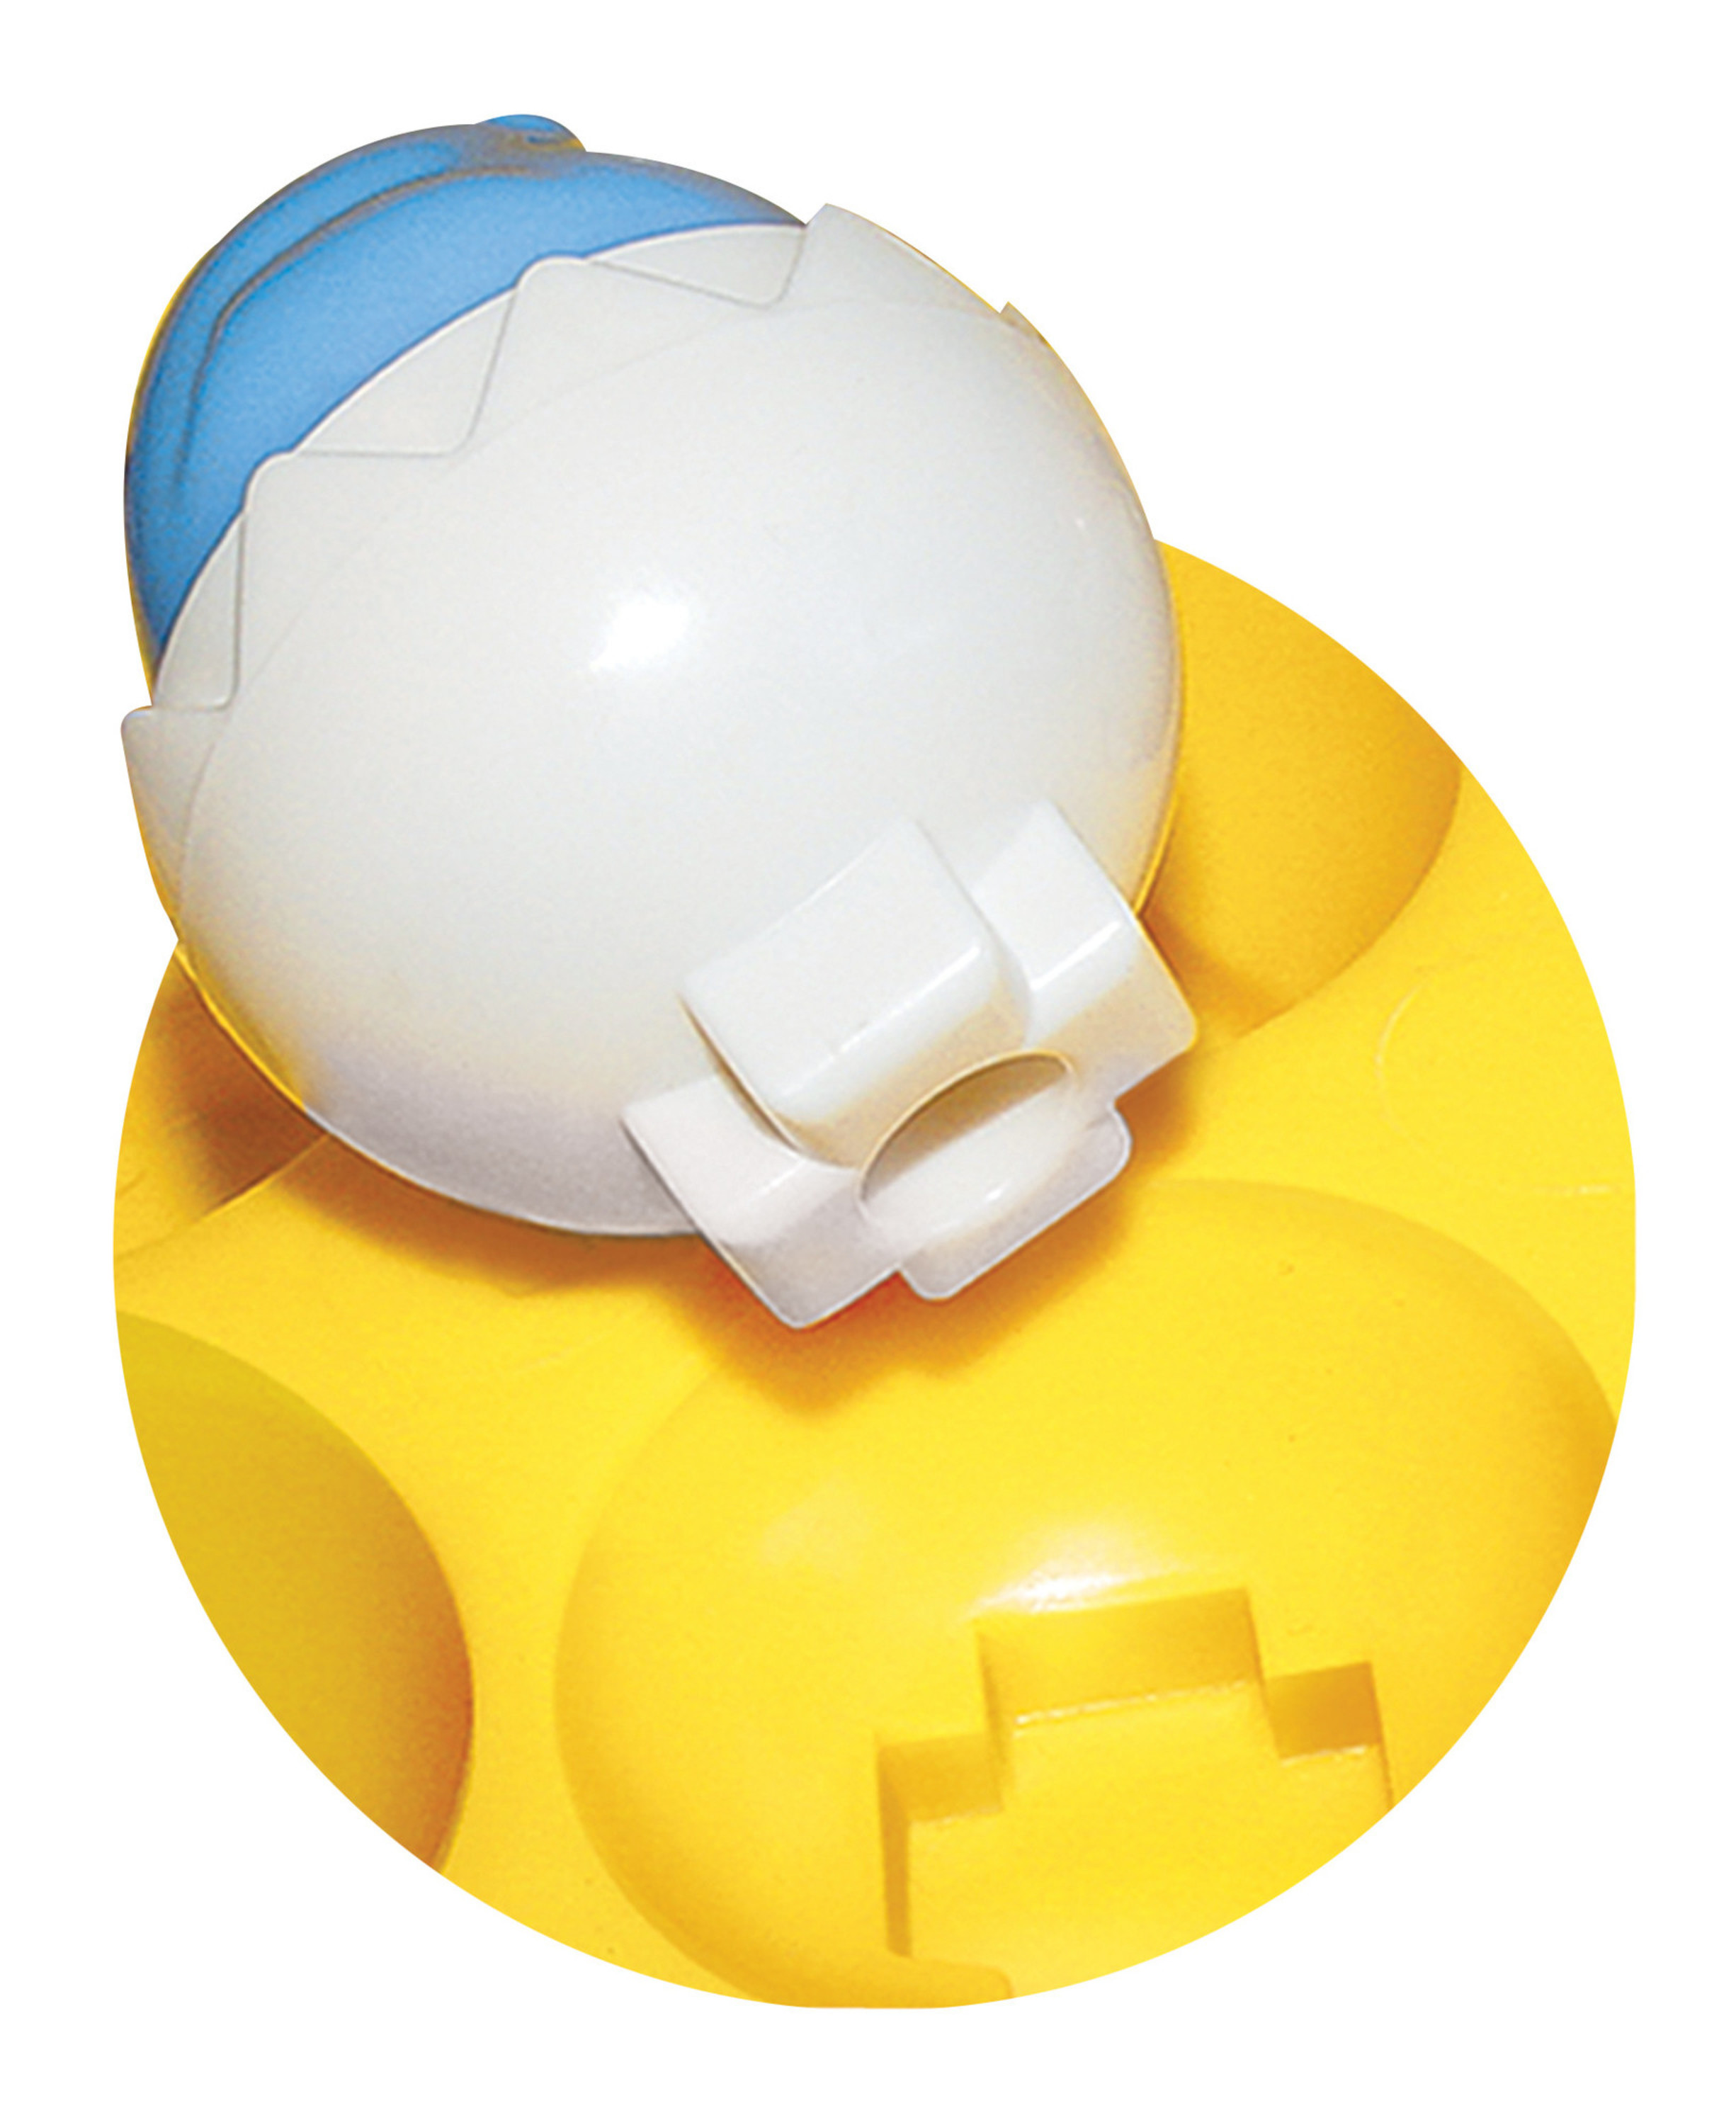 TOMY Play to Learn Hide /'n/' Squeak Eggs Baby Toddler Activity Learning Toy New